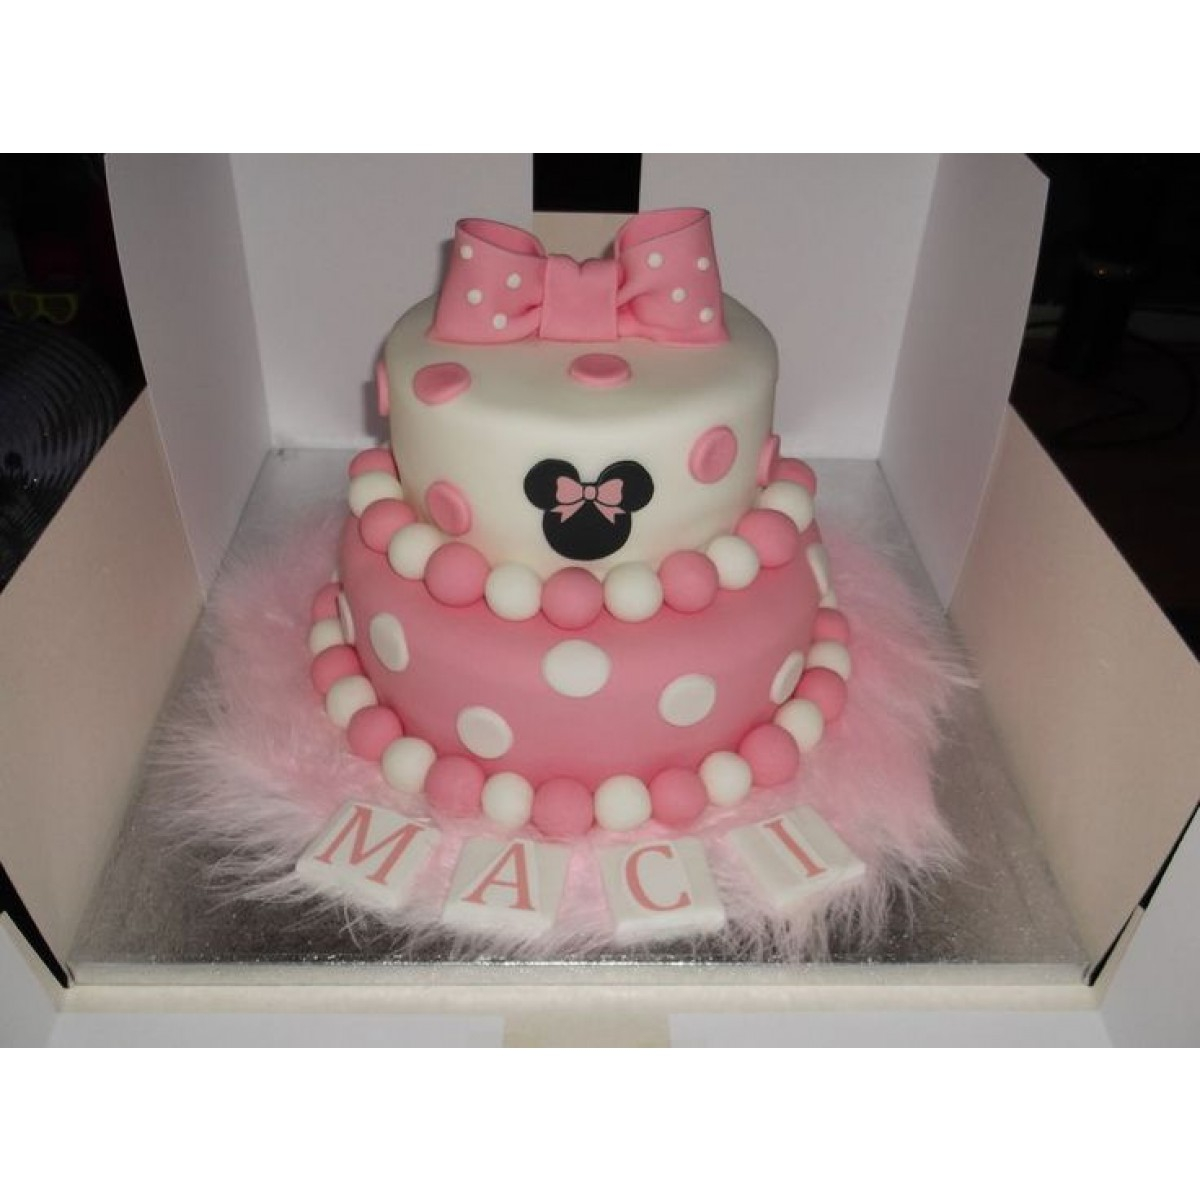 Two Tier Birthday Cake 2 Tier Fondant Birthday Cake3kg